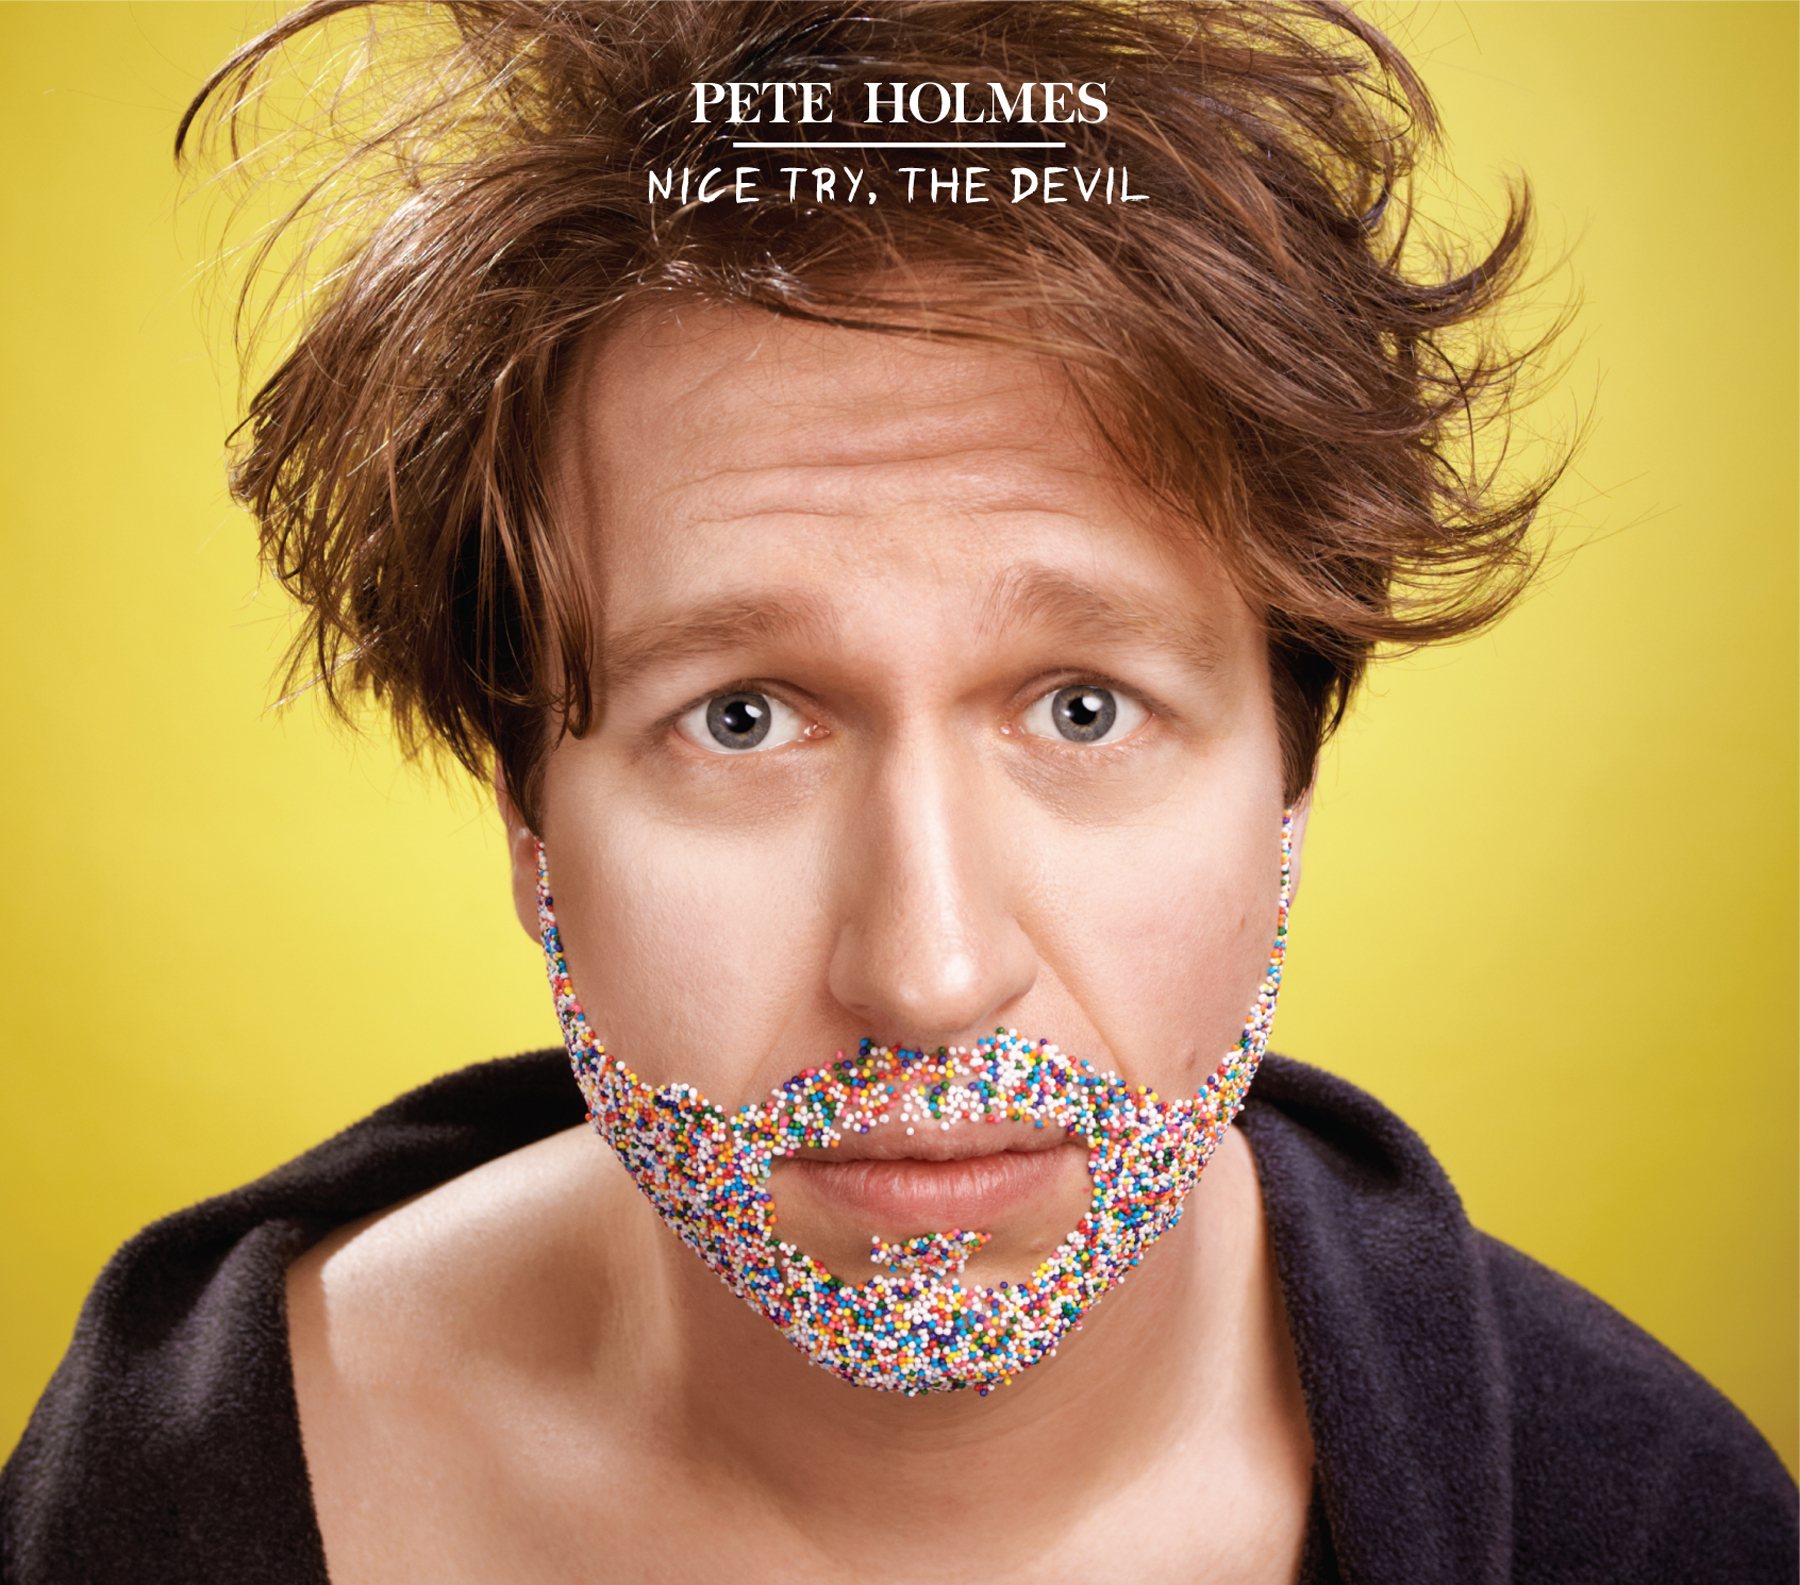 Pete Holmes - Nice try, The devil EP